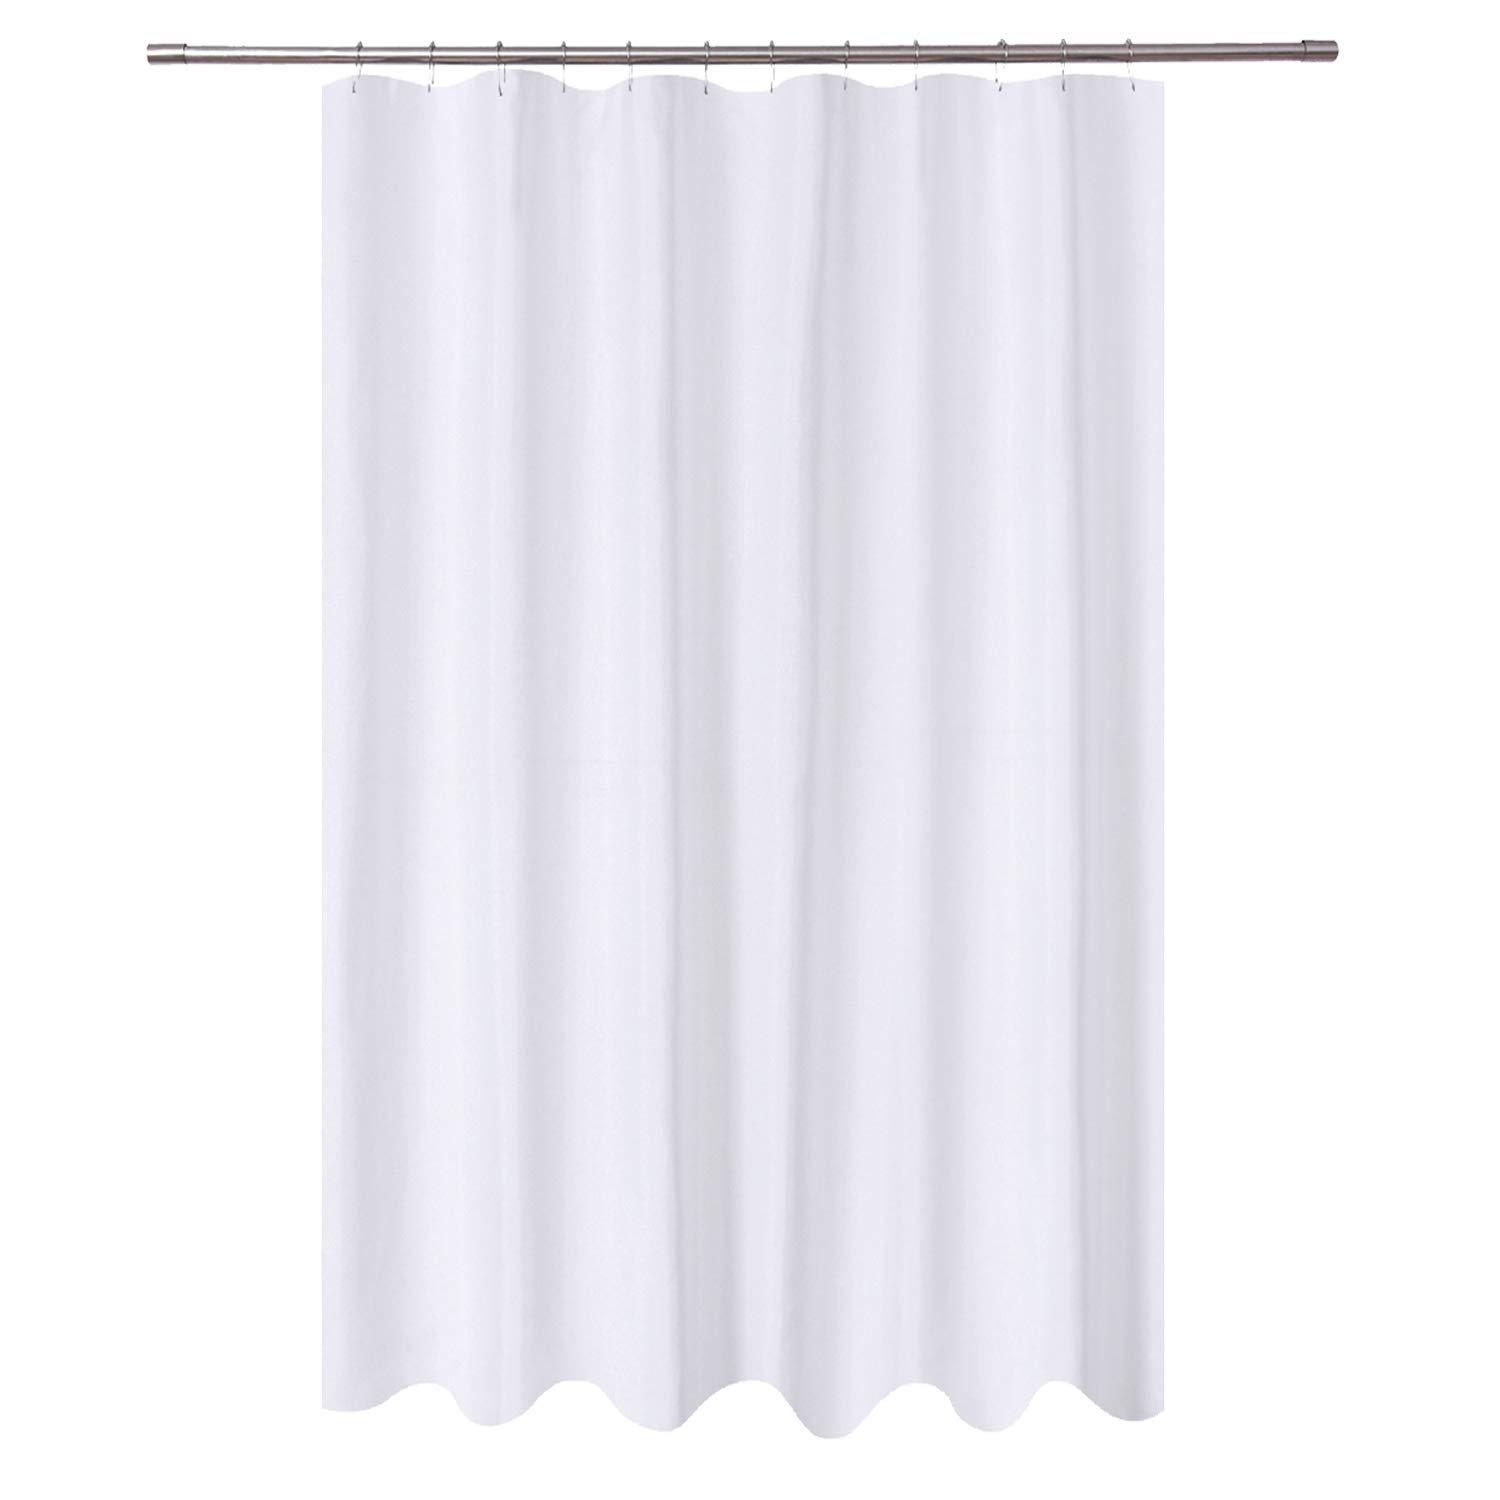 N Y Home Extra Long Shower Curtain Liner Fabric 72 X 96 Inch